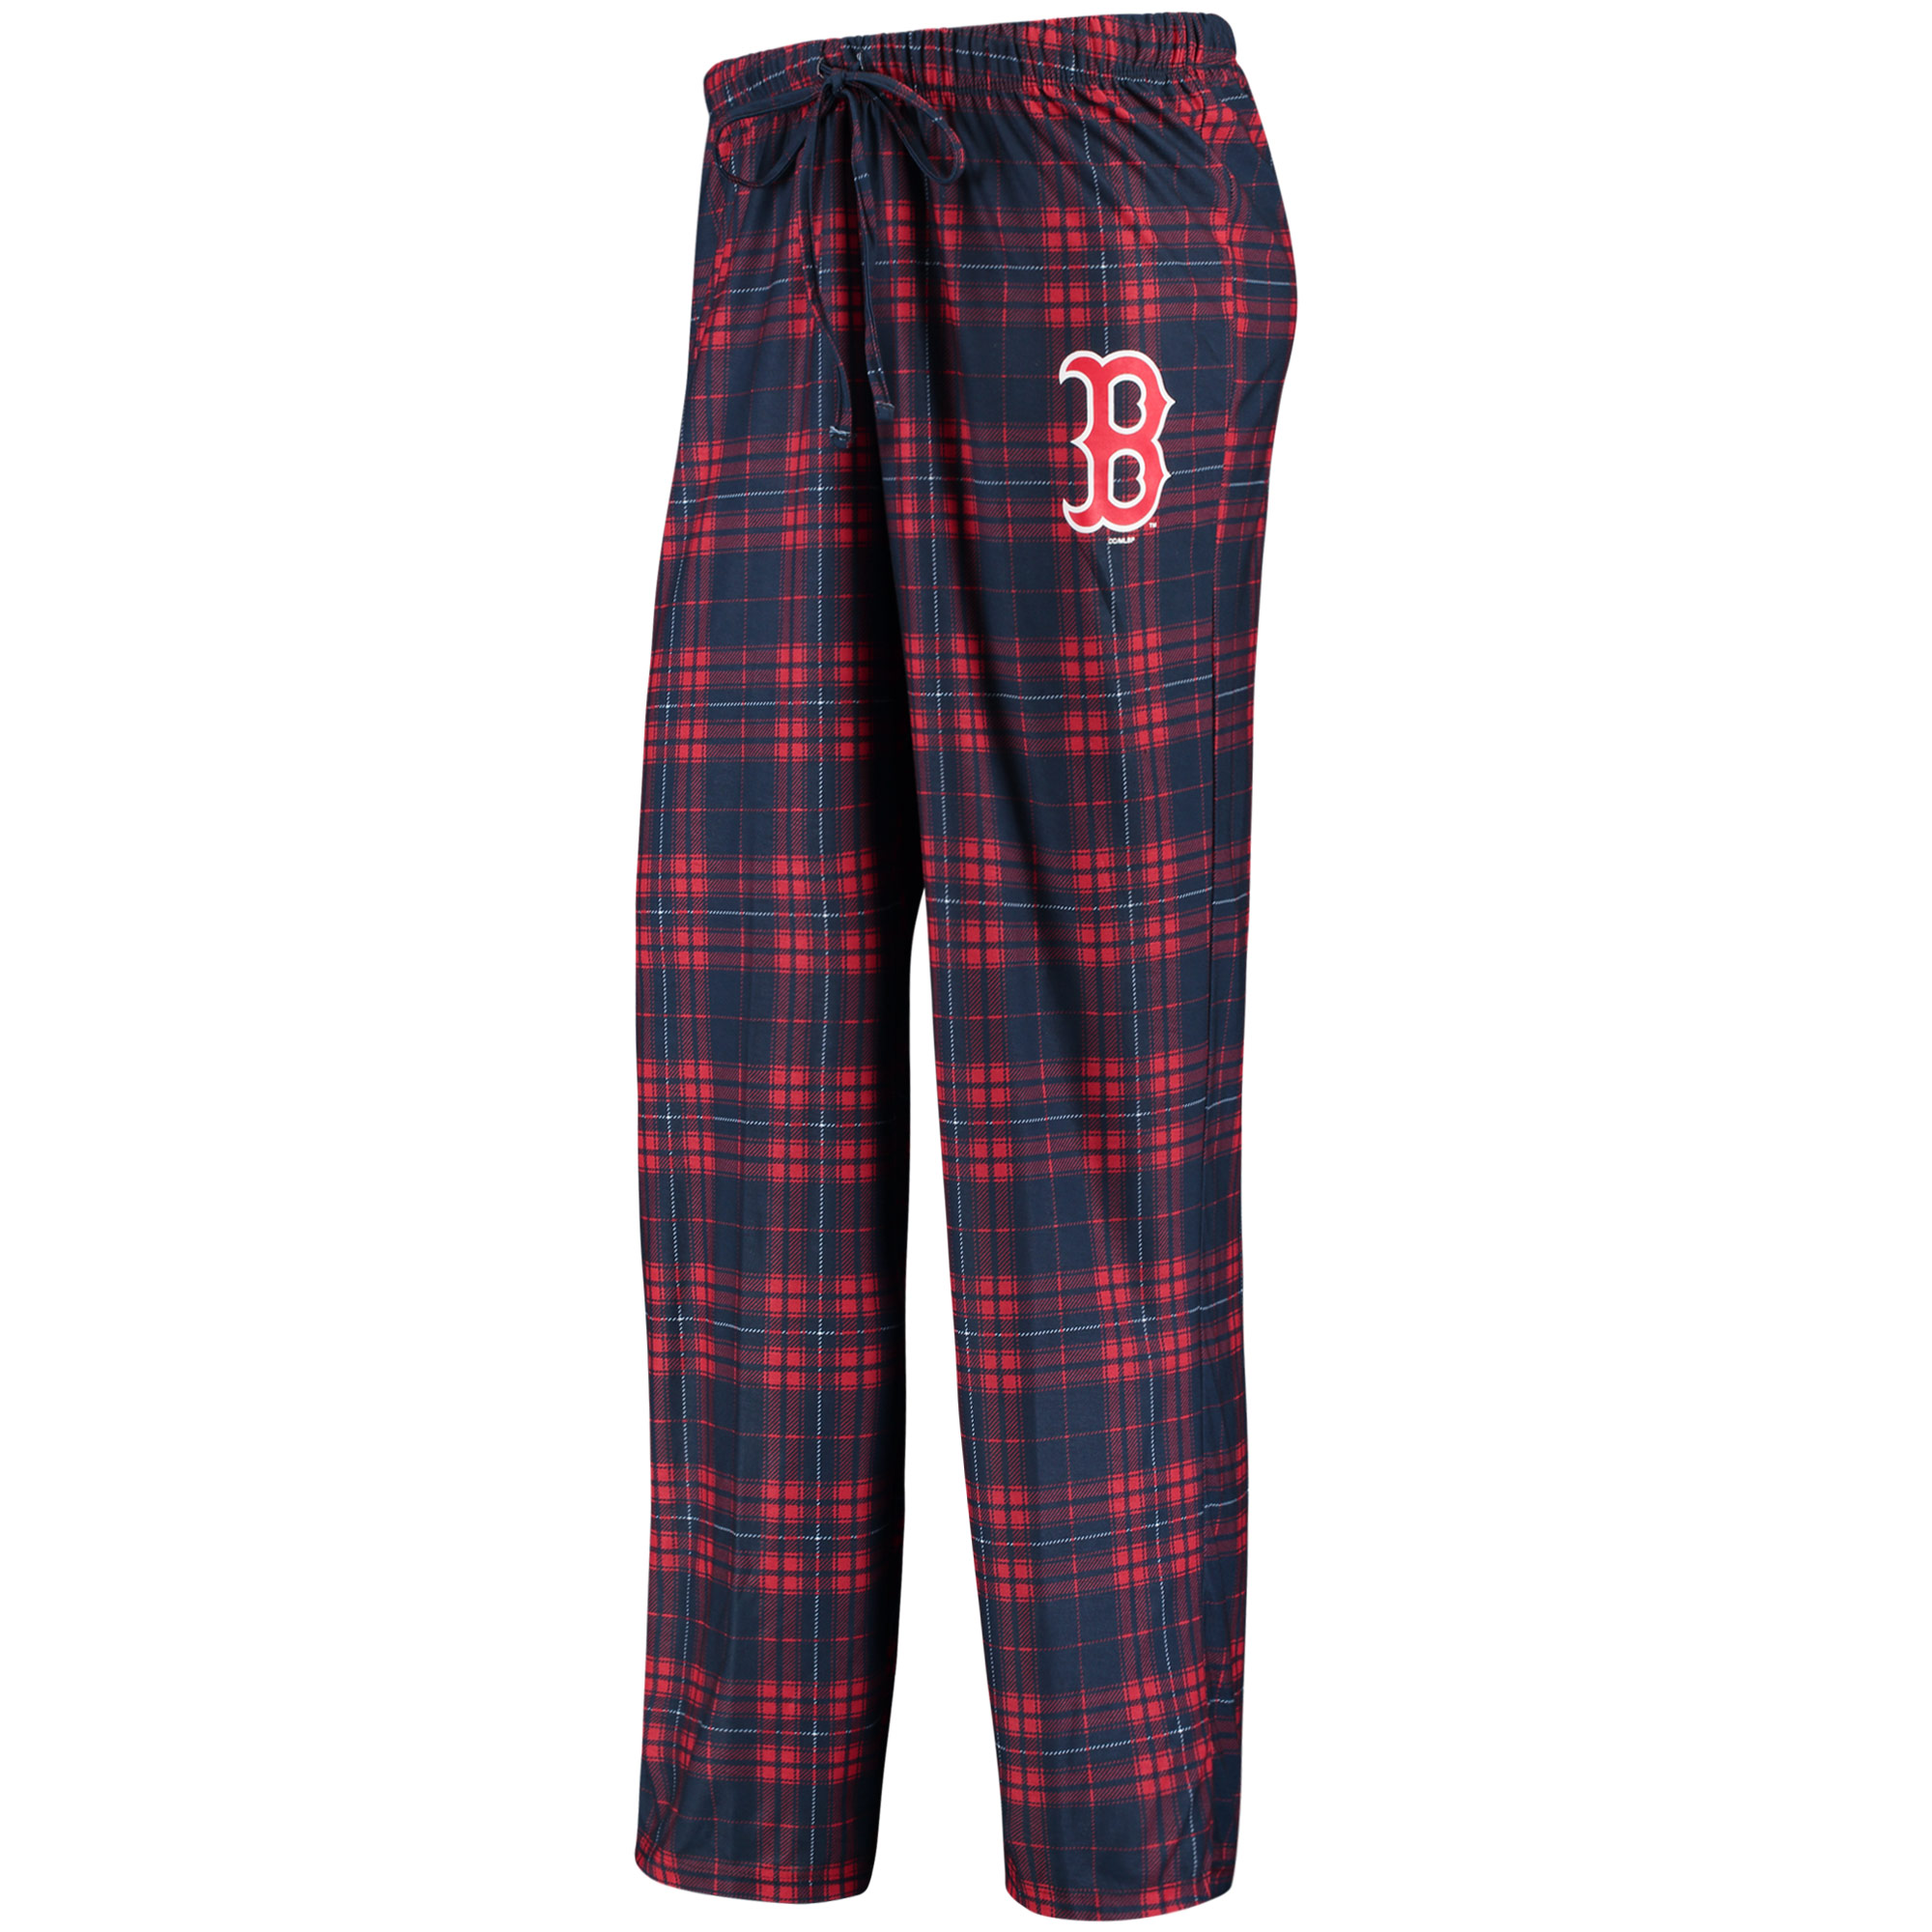 Boston Red Sox Concepts Sport Women's Plus Size Rush Knit Pants - Navy/Red